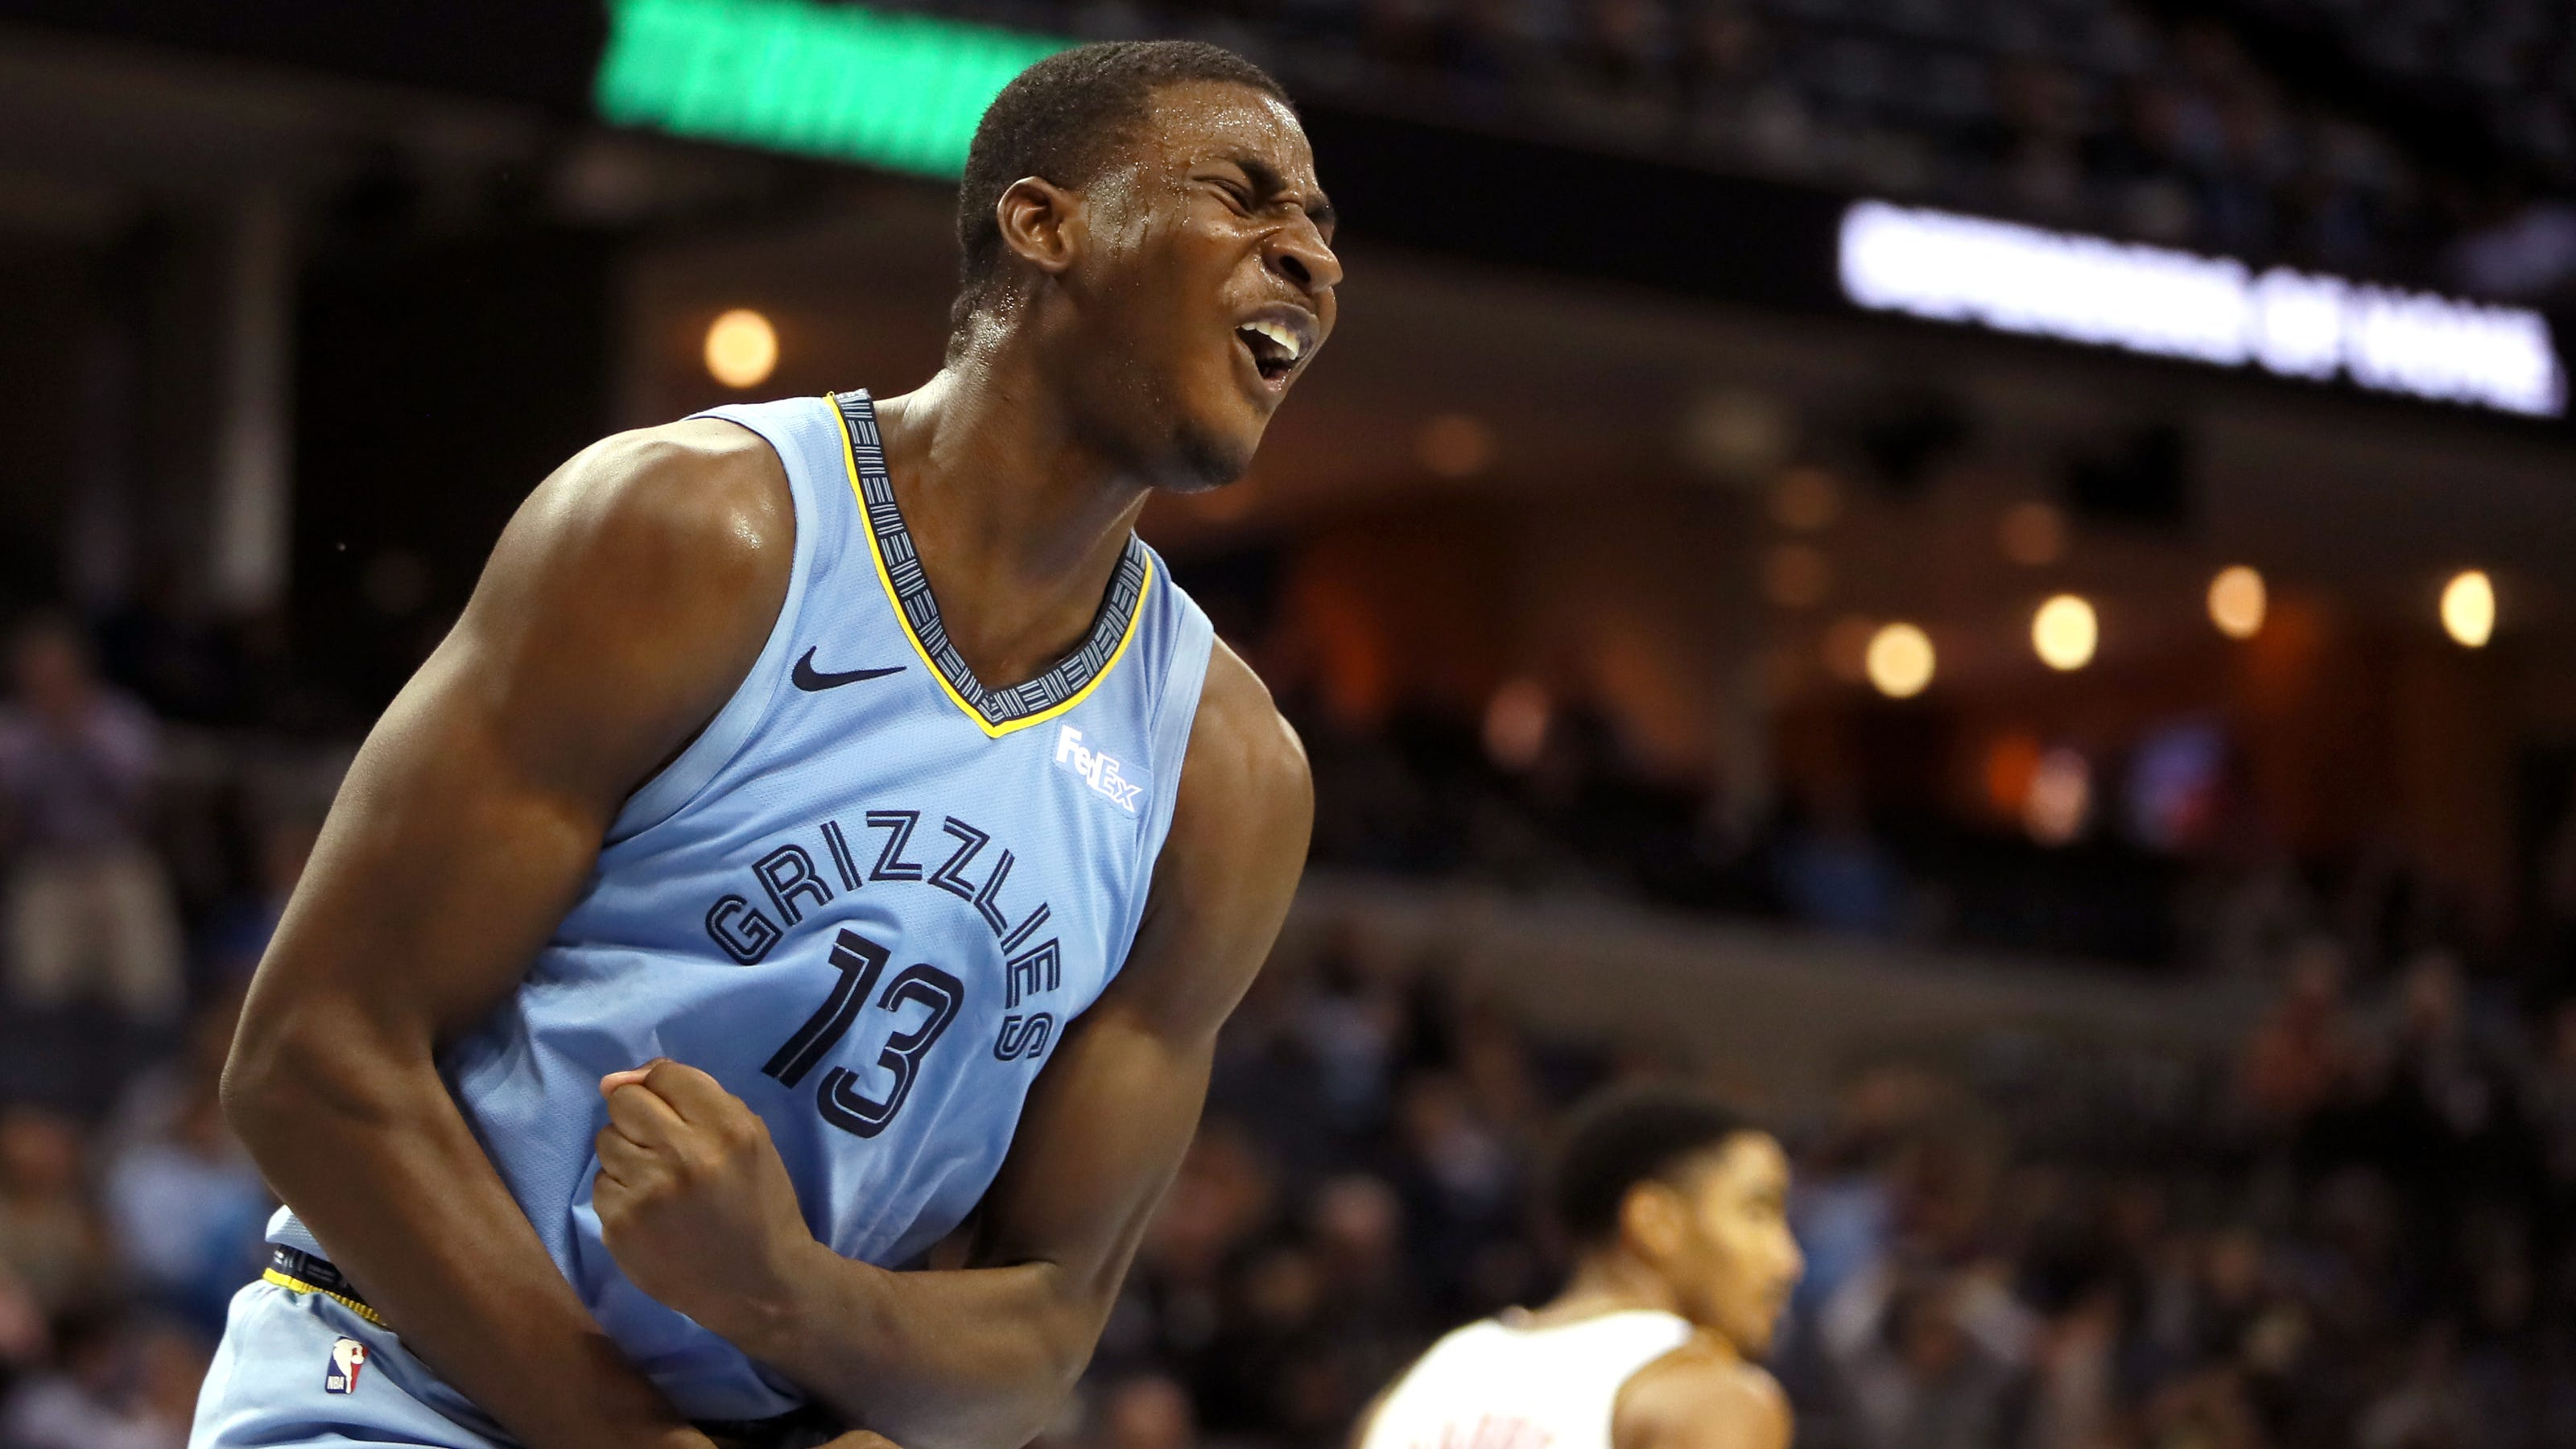 Memphis Grizzlies Jaren Jackson Jr Makes Nba All Rookie Team What's great is that all the games are suitable for younger players, and you'll never see an advert or a link to another site. jaren jackson jr makes nba all rookie team